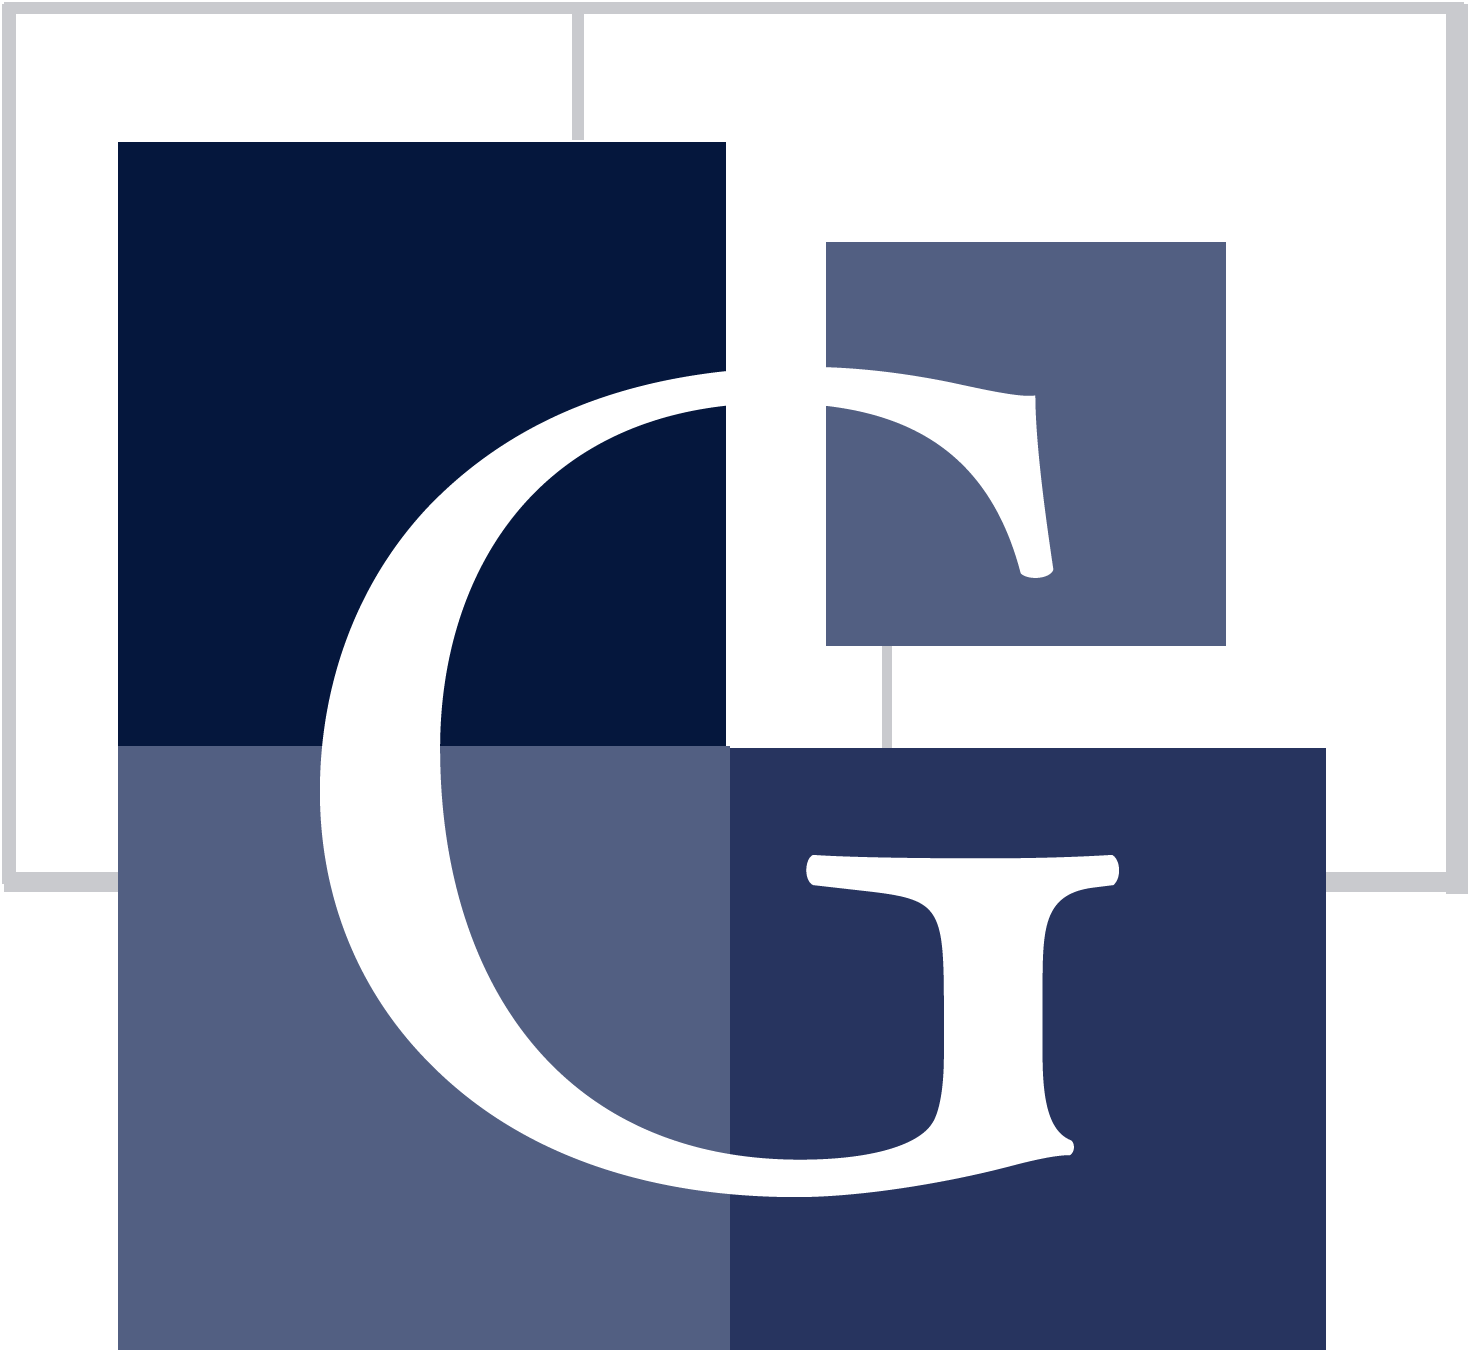 Guardant Investments, Inc. image